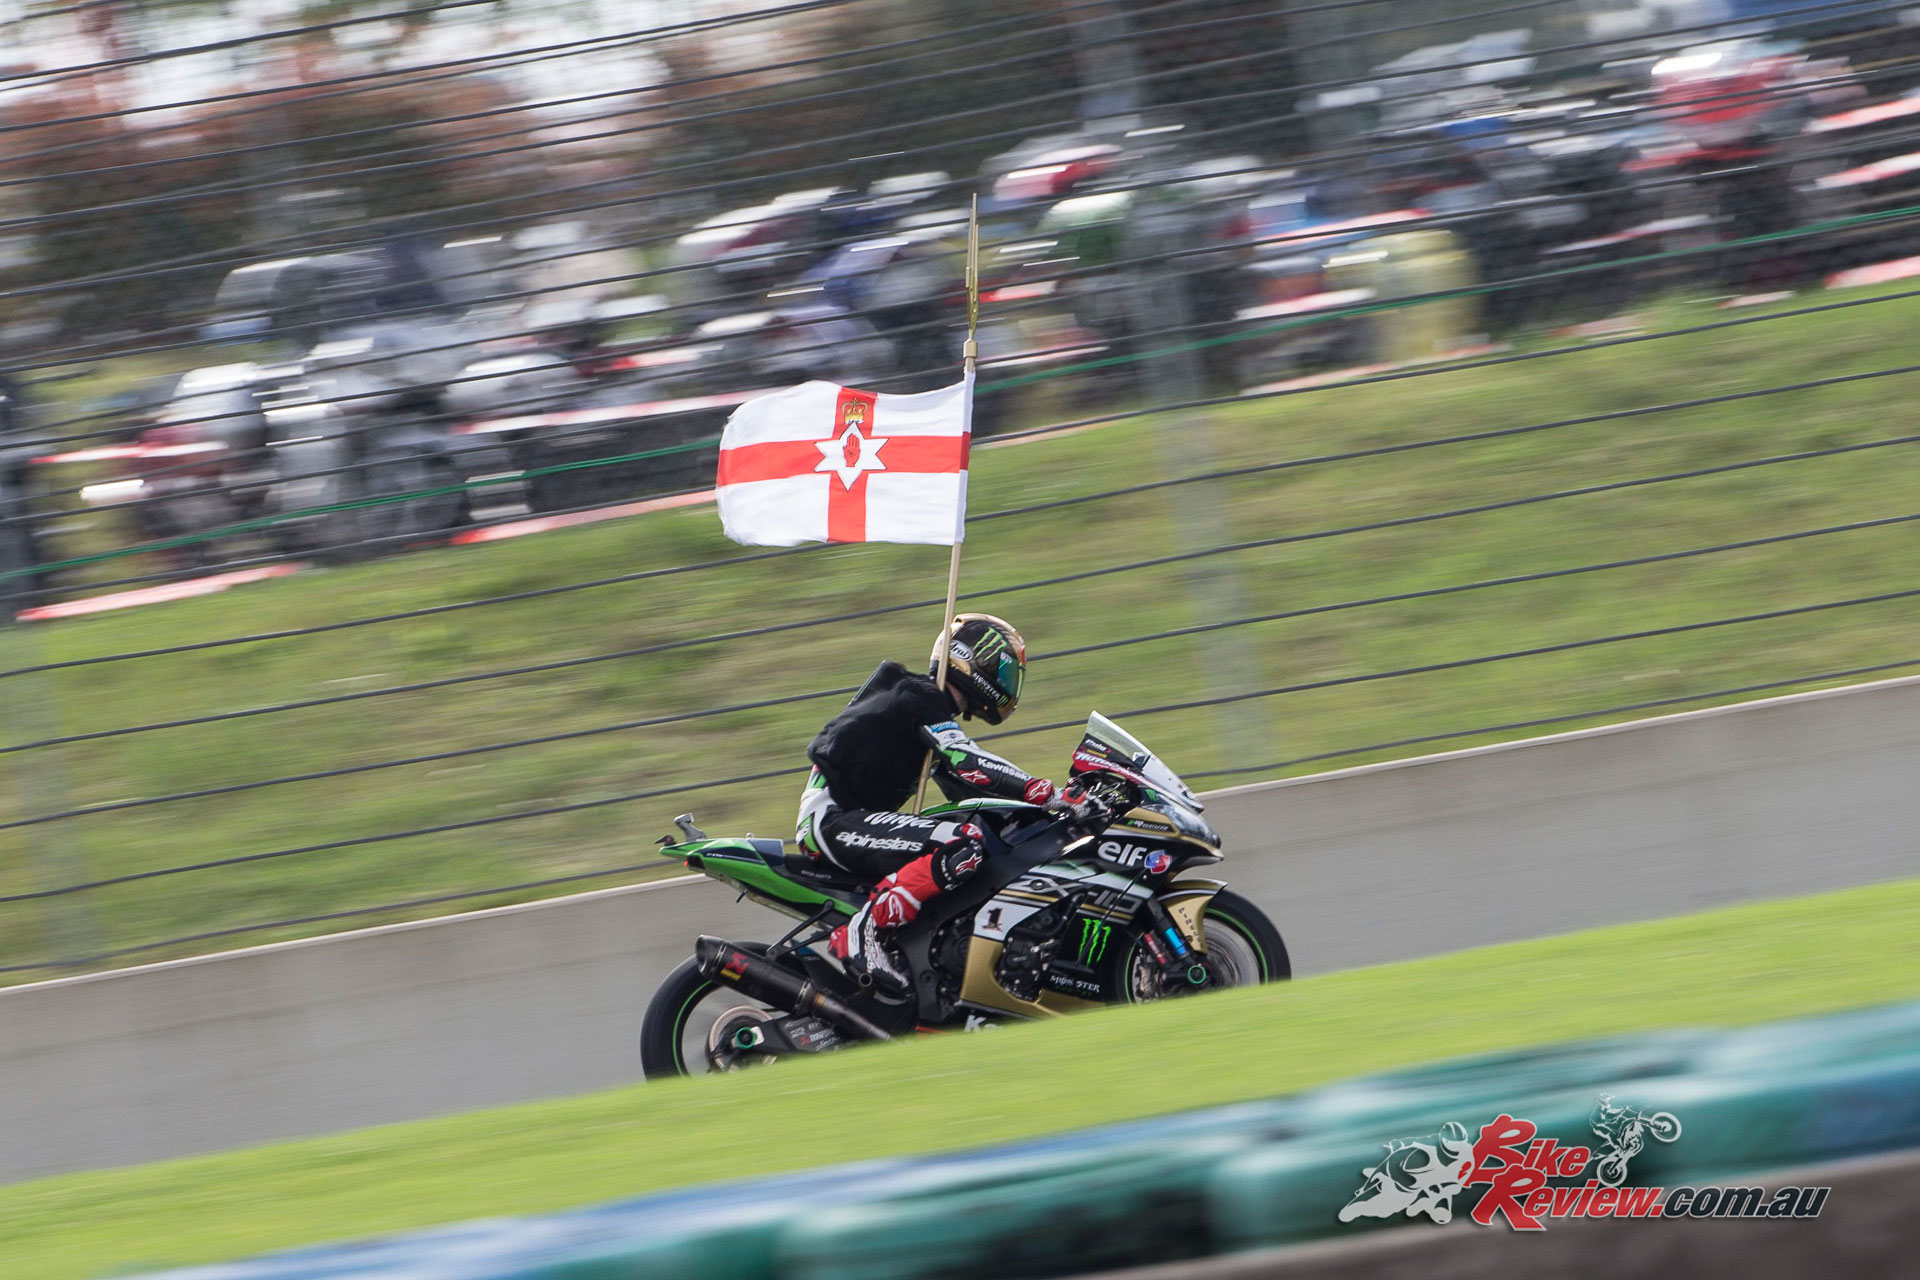 Jonathan Rea - Image: BeeGee Images